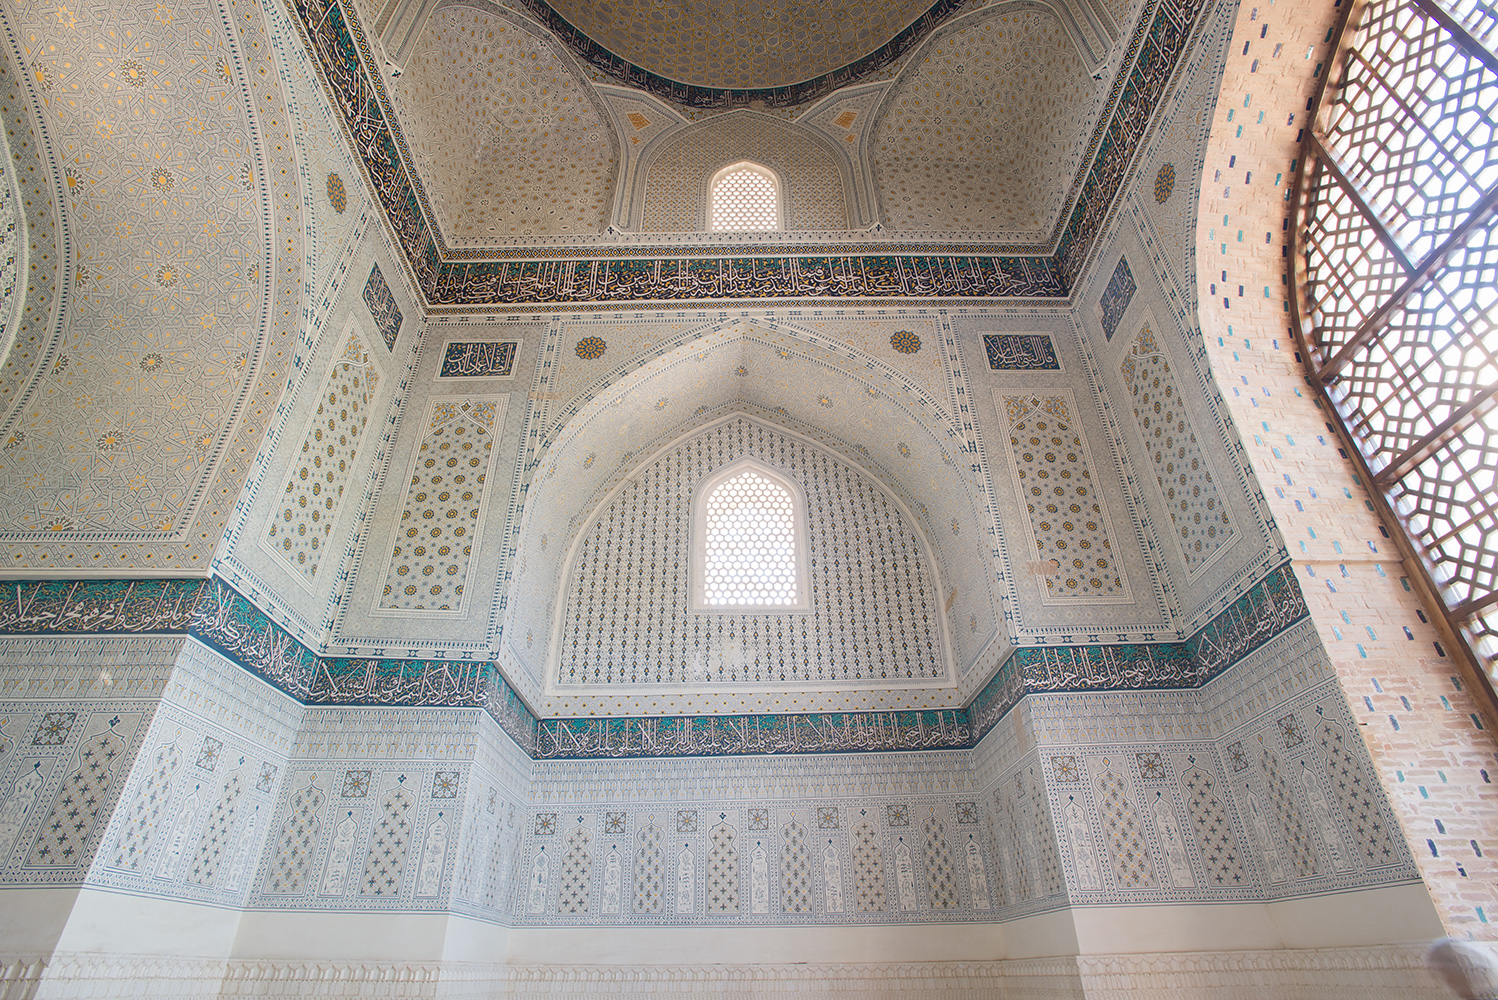 The completed restoration in one of the smaller side mosques in the complex.